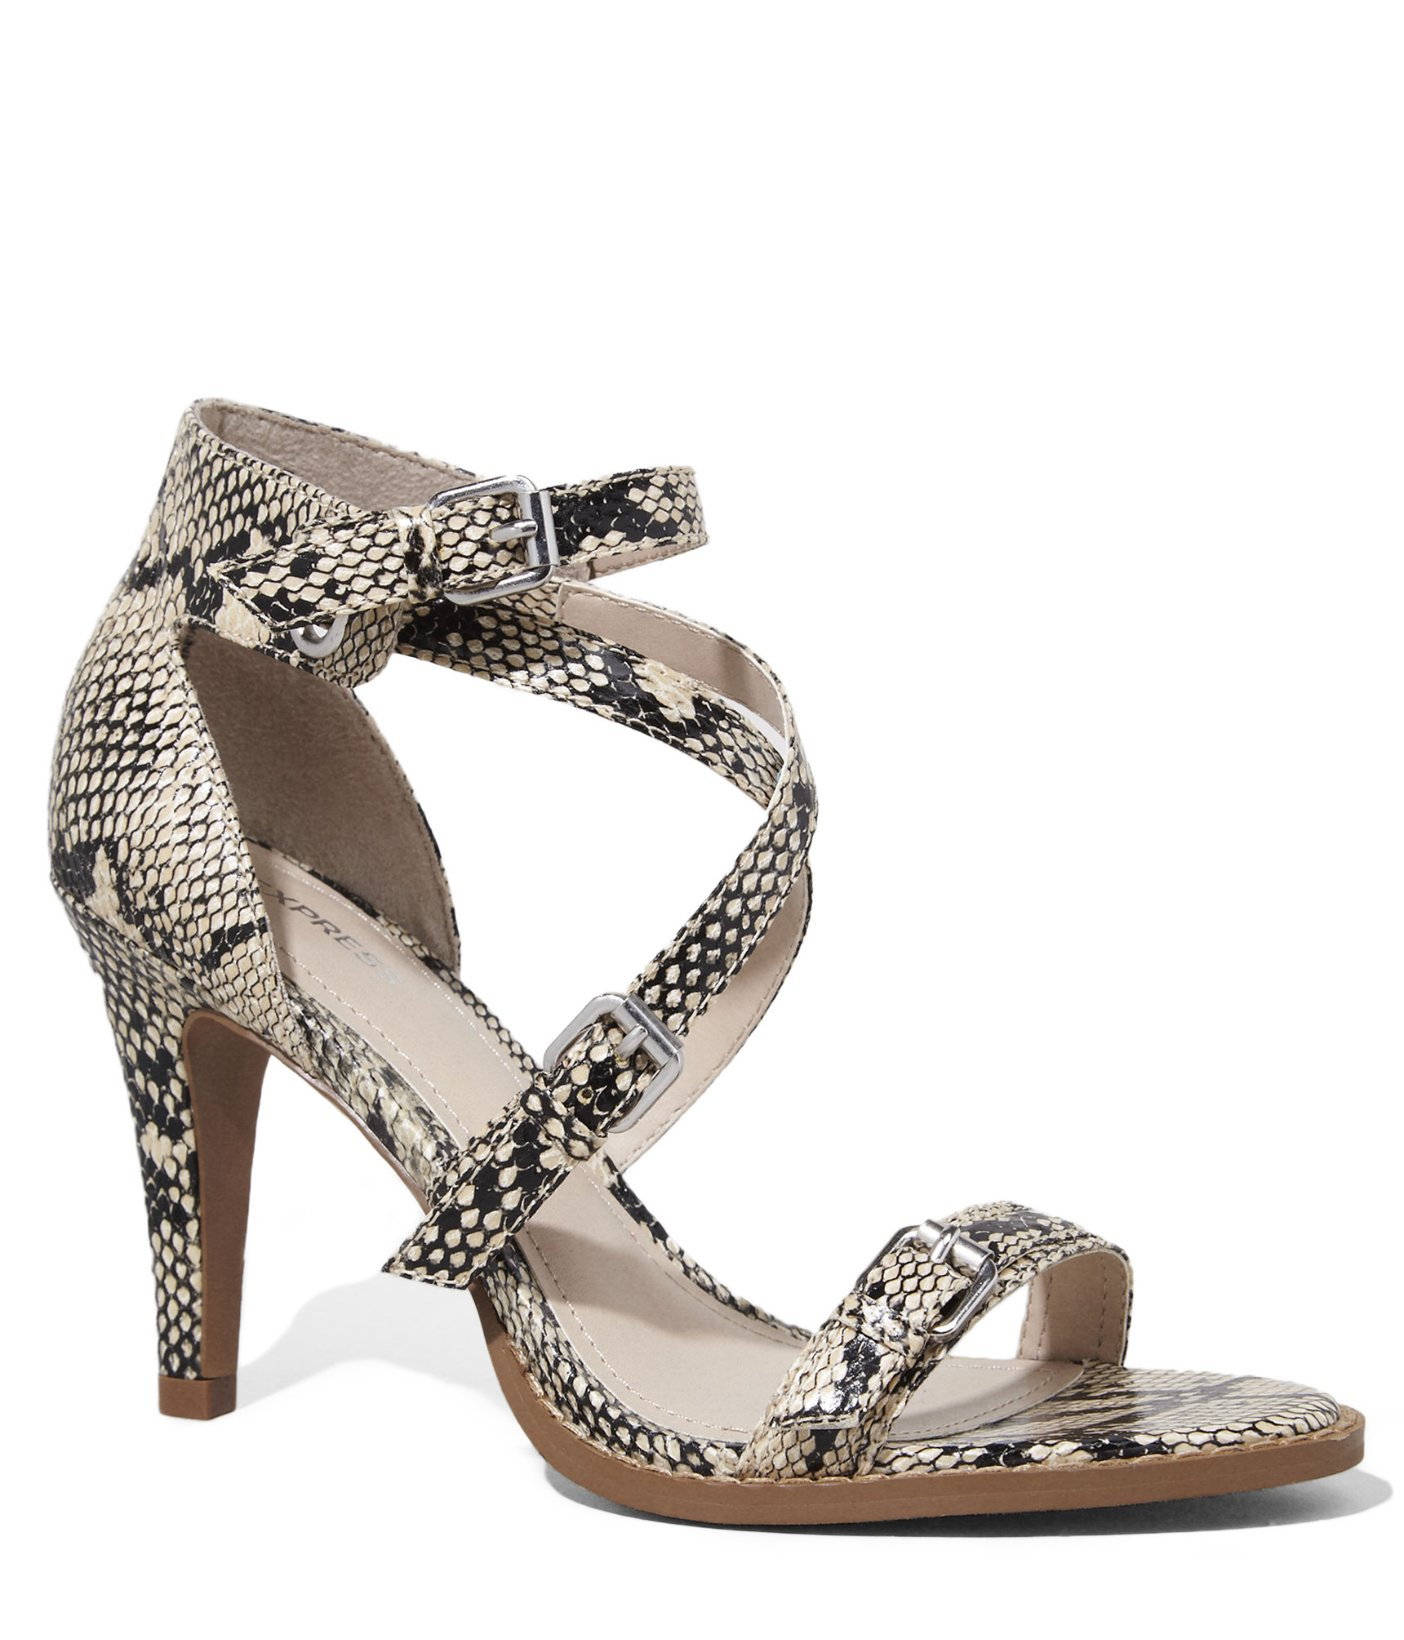 05c4105e0846 Lyst - Express Strappy Snakeskin Print Heeled Runway Sandal in Natural